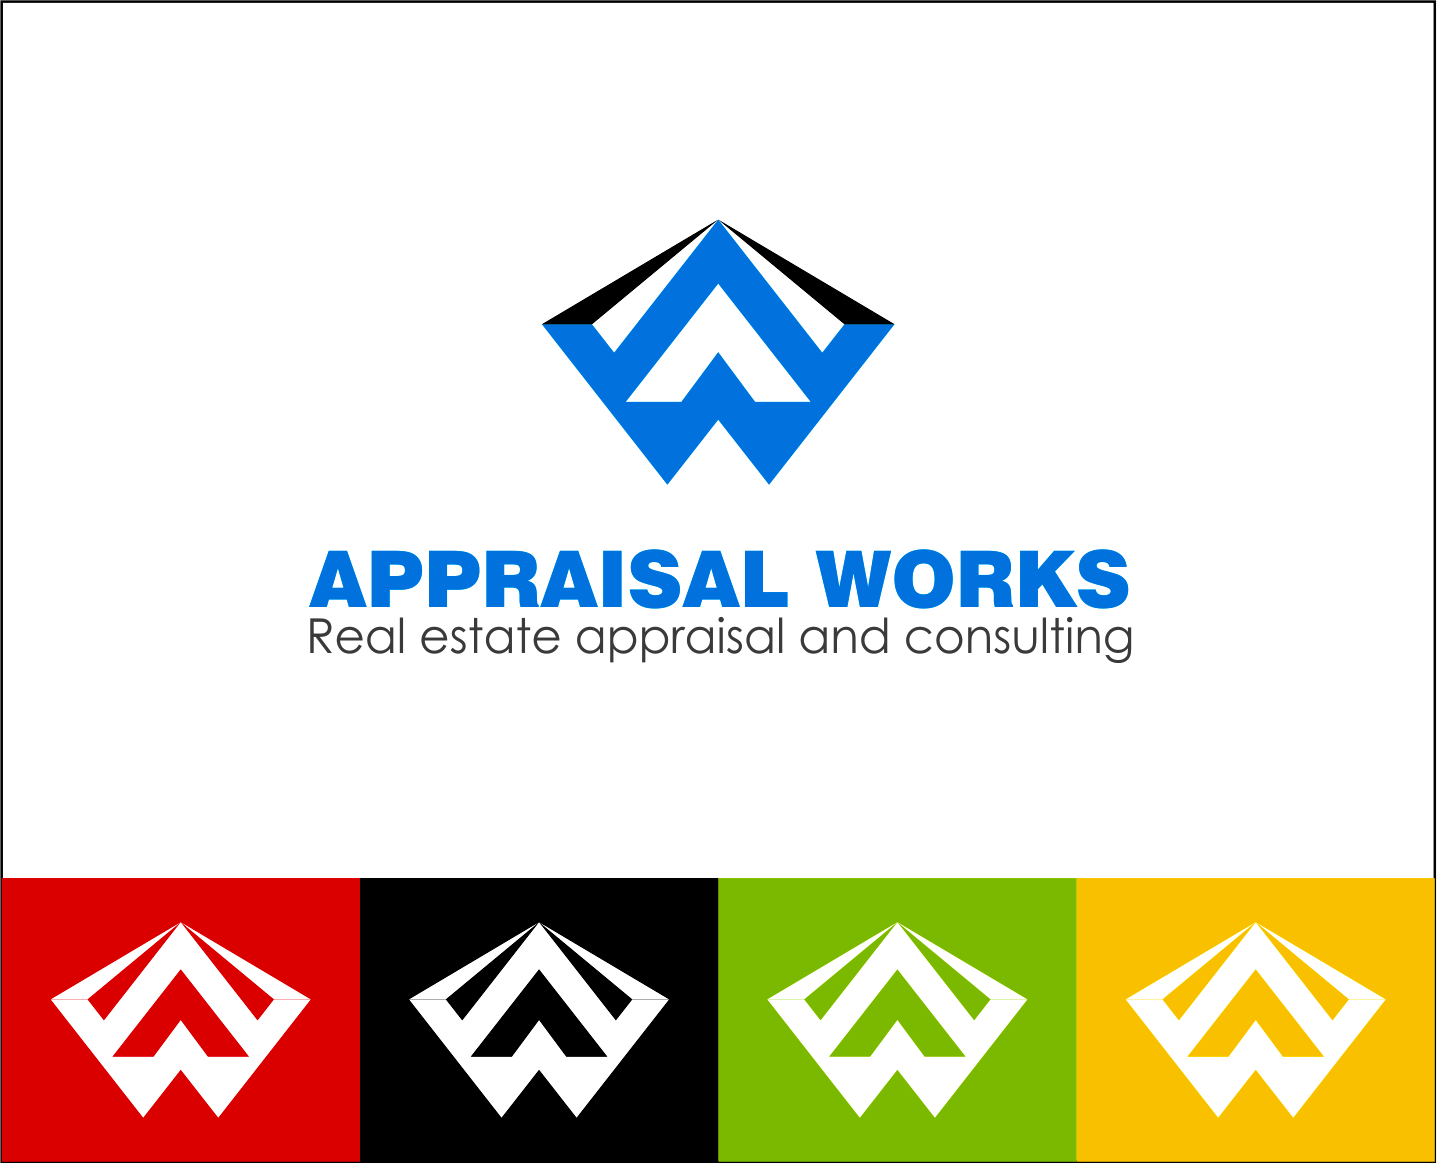 Logo Design by Armada Jamaluddin - Entry No. 129 in the Logo Design Contest Appraisal Works Logo Design.